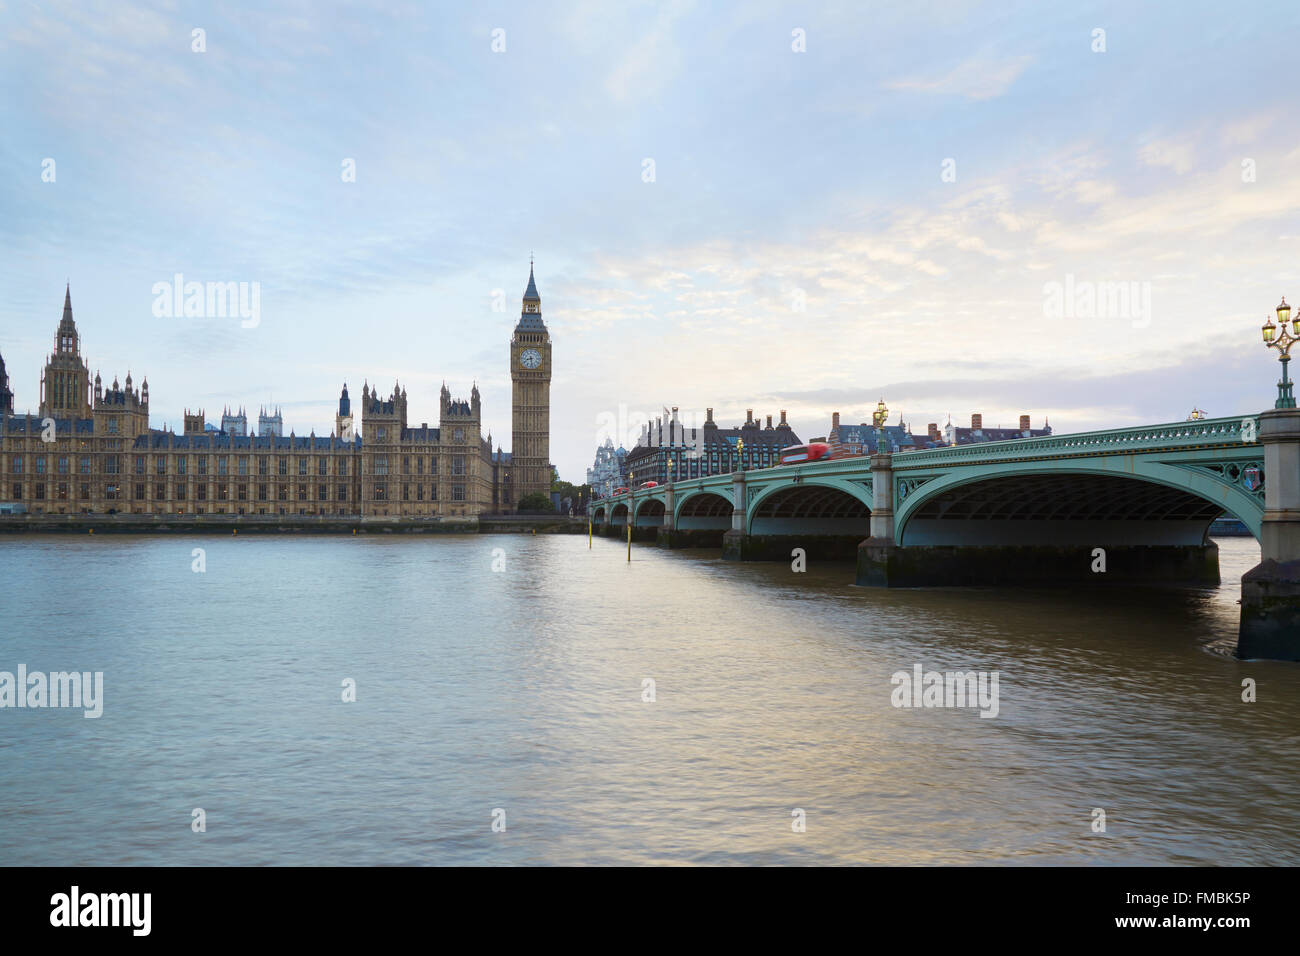 Big Ben and Palace of Westminster at dusk in London, natural light and colors - Stock Image